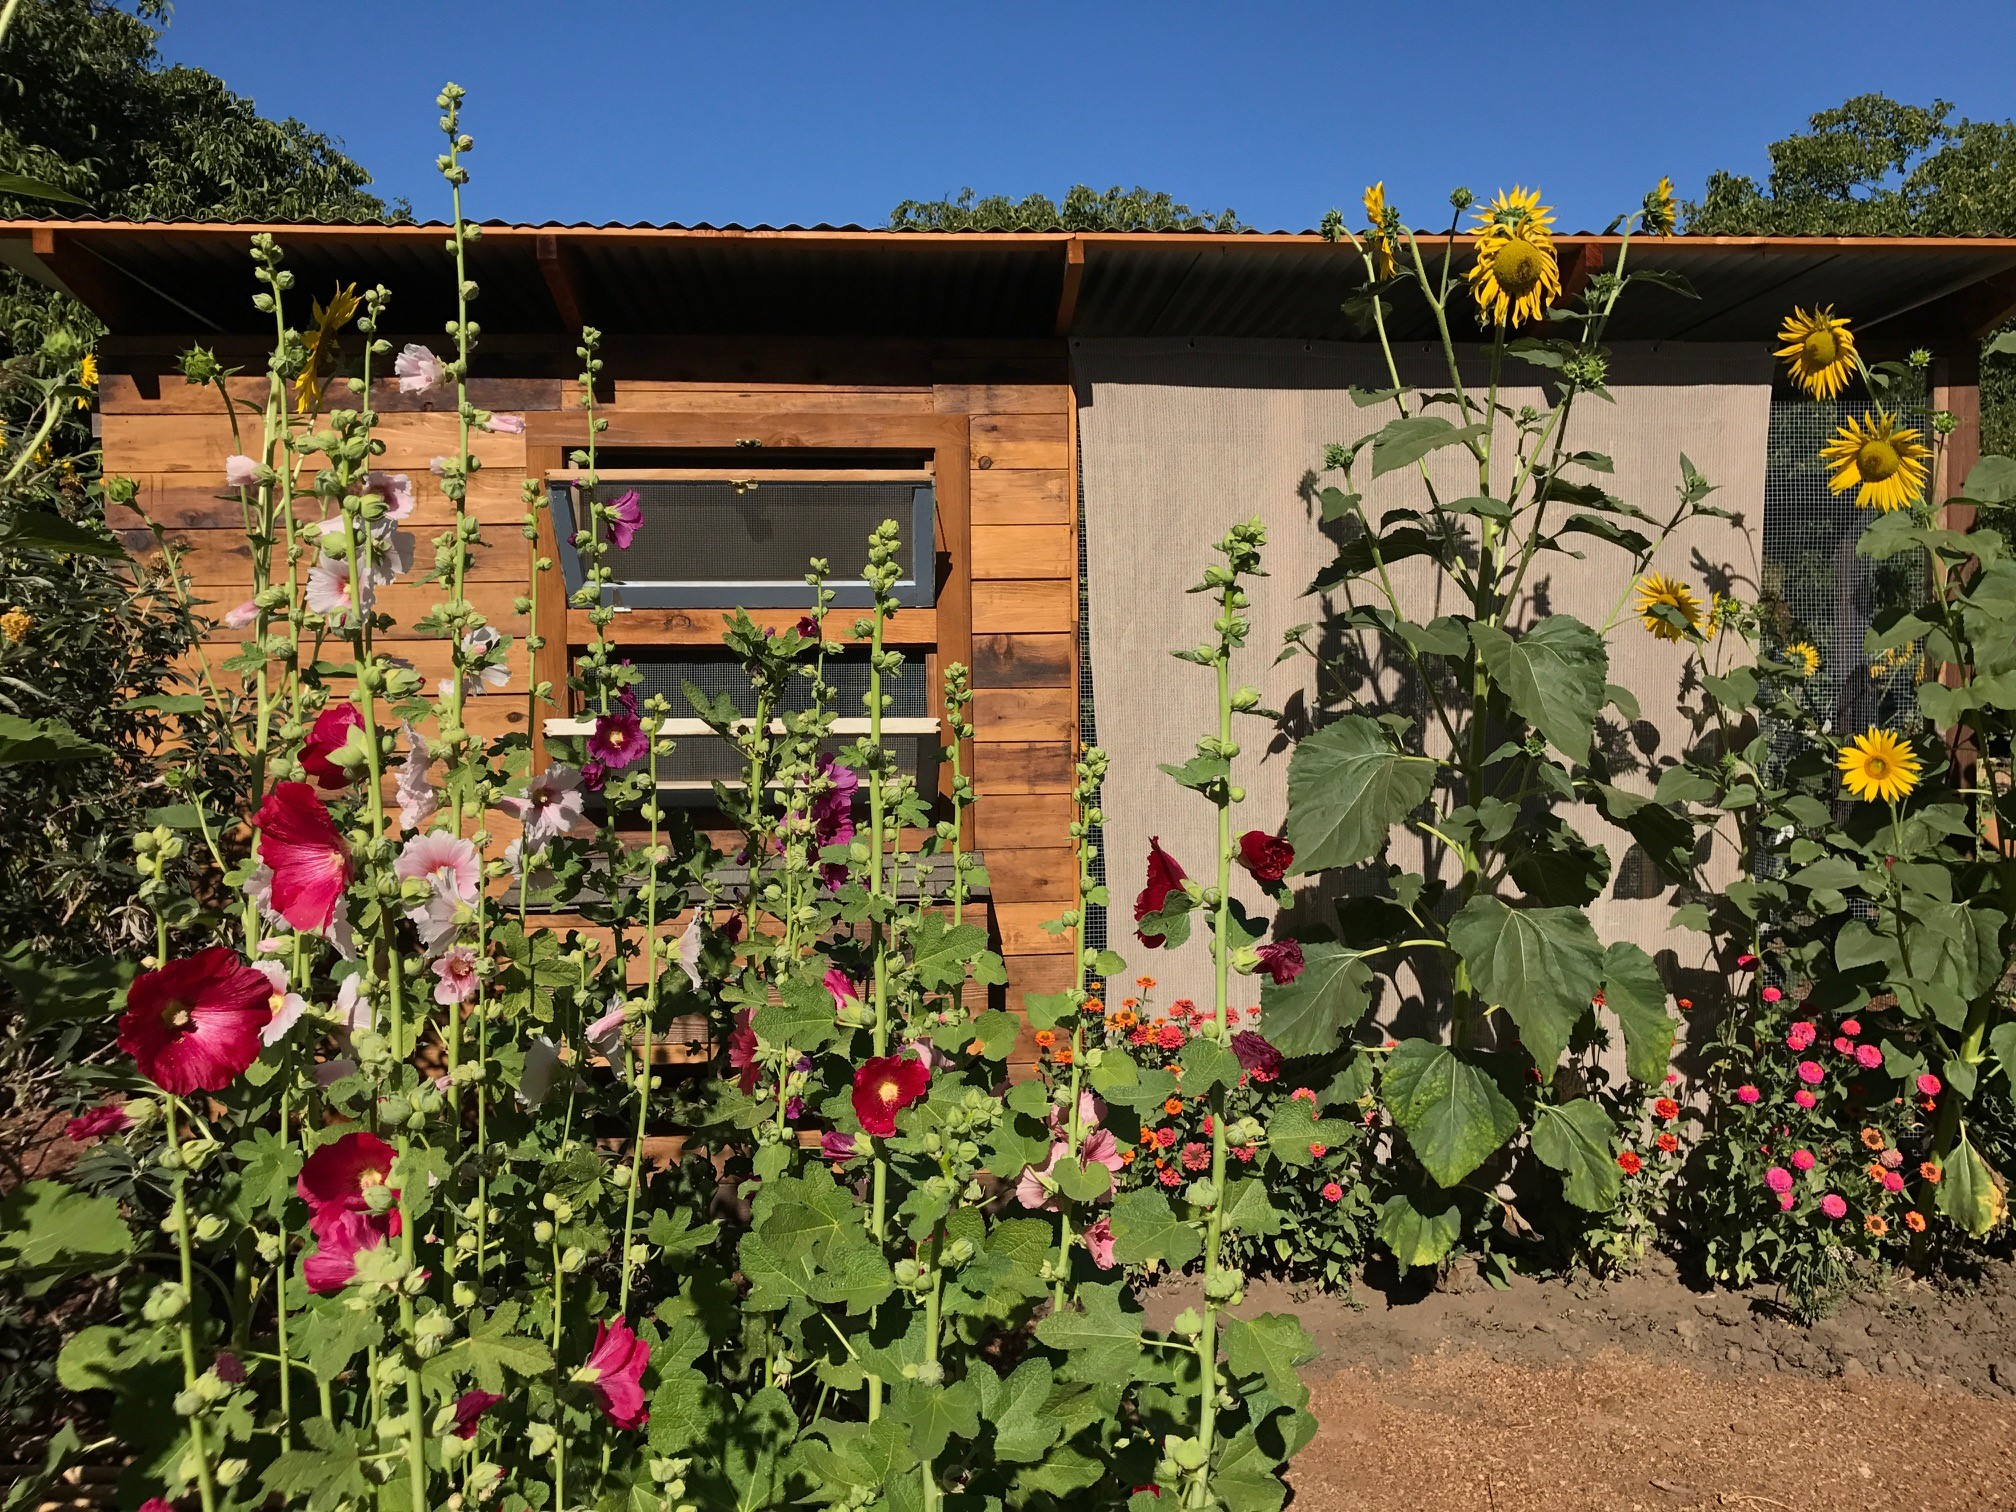 Bay-Friendly Garden Tour ~ May 20 – Napa County RCD